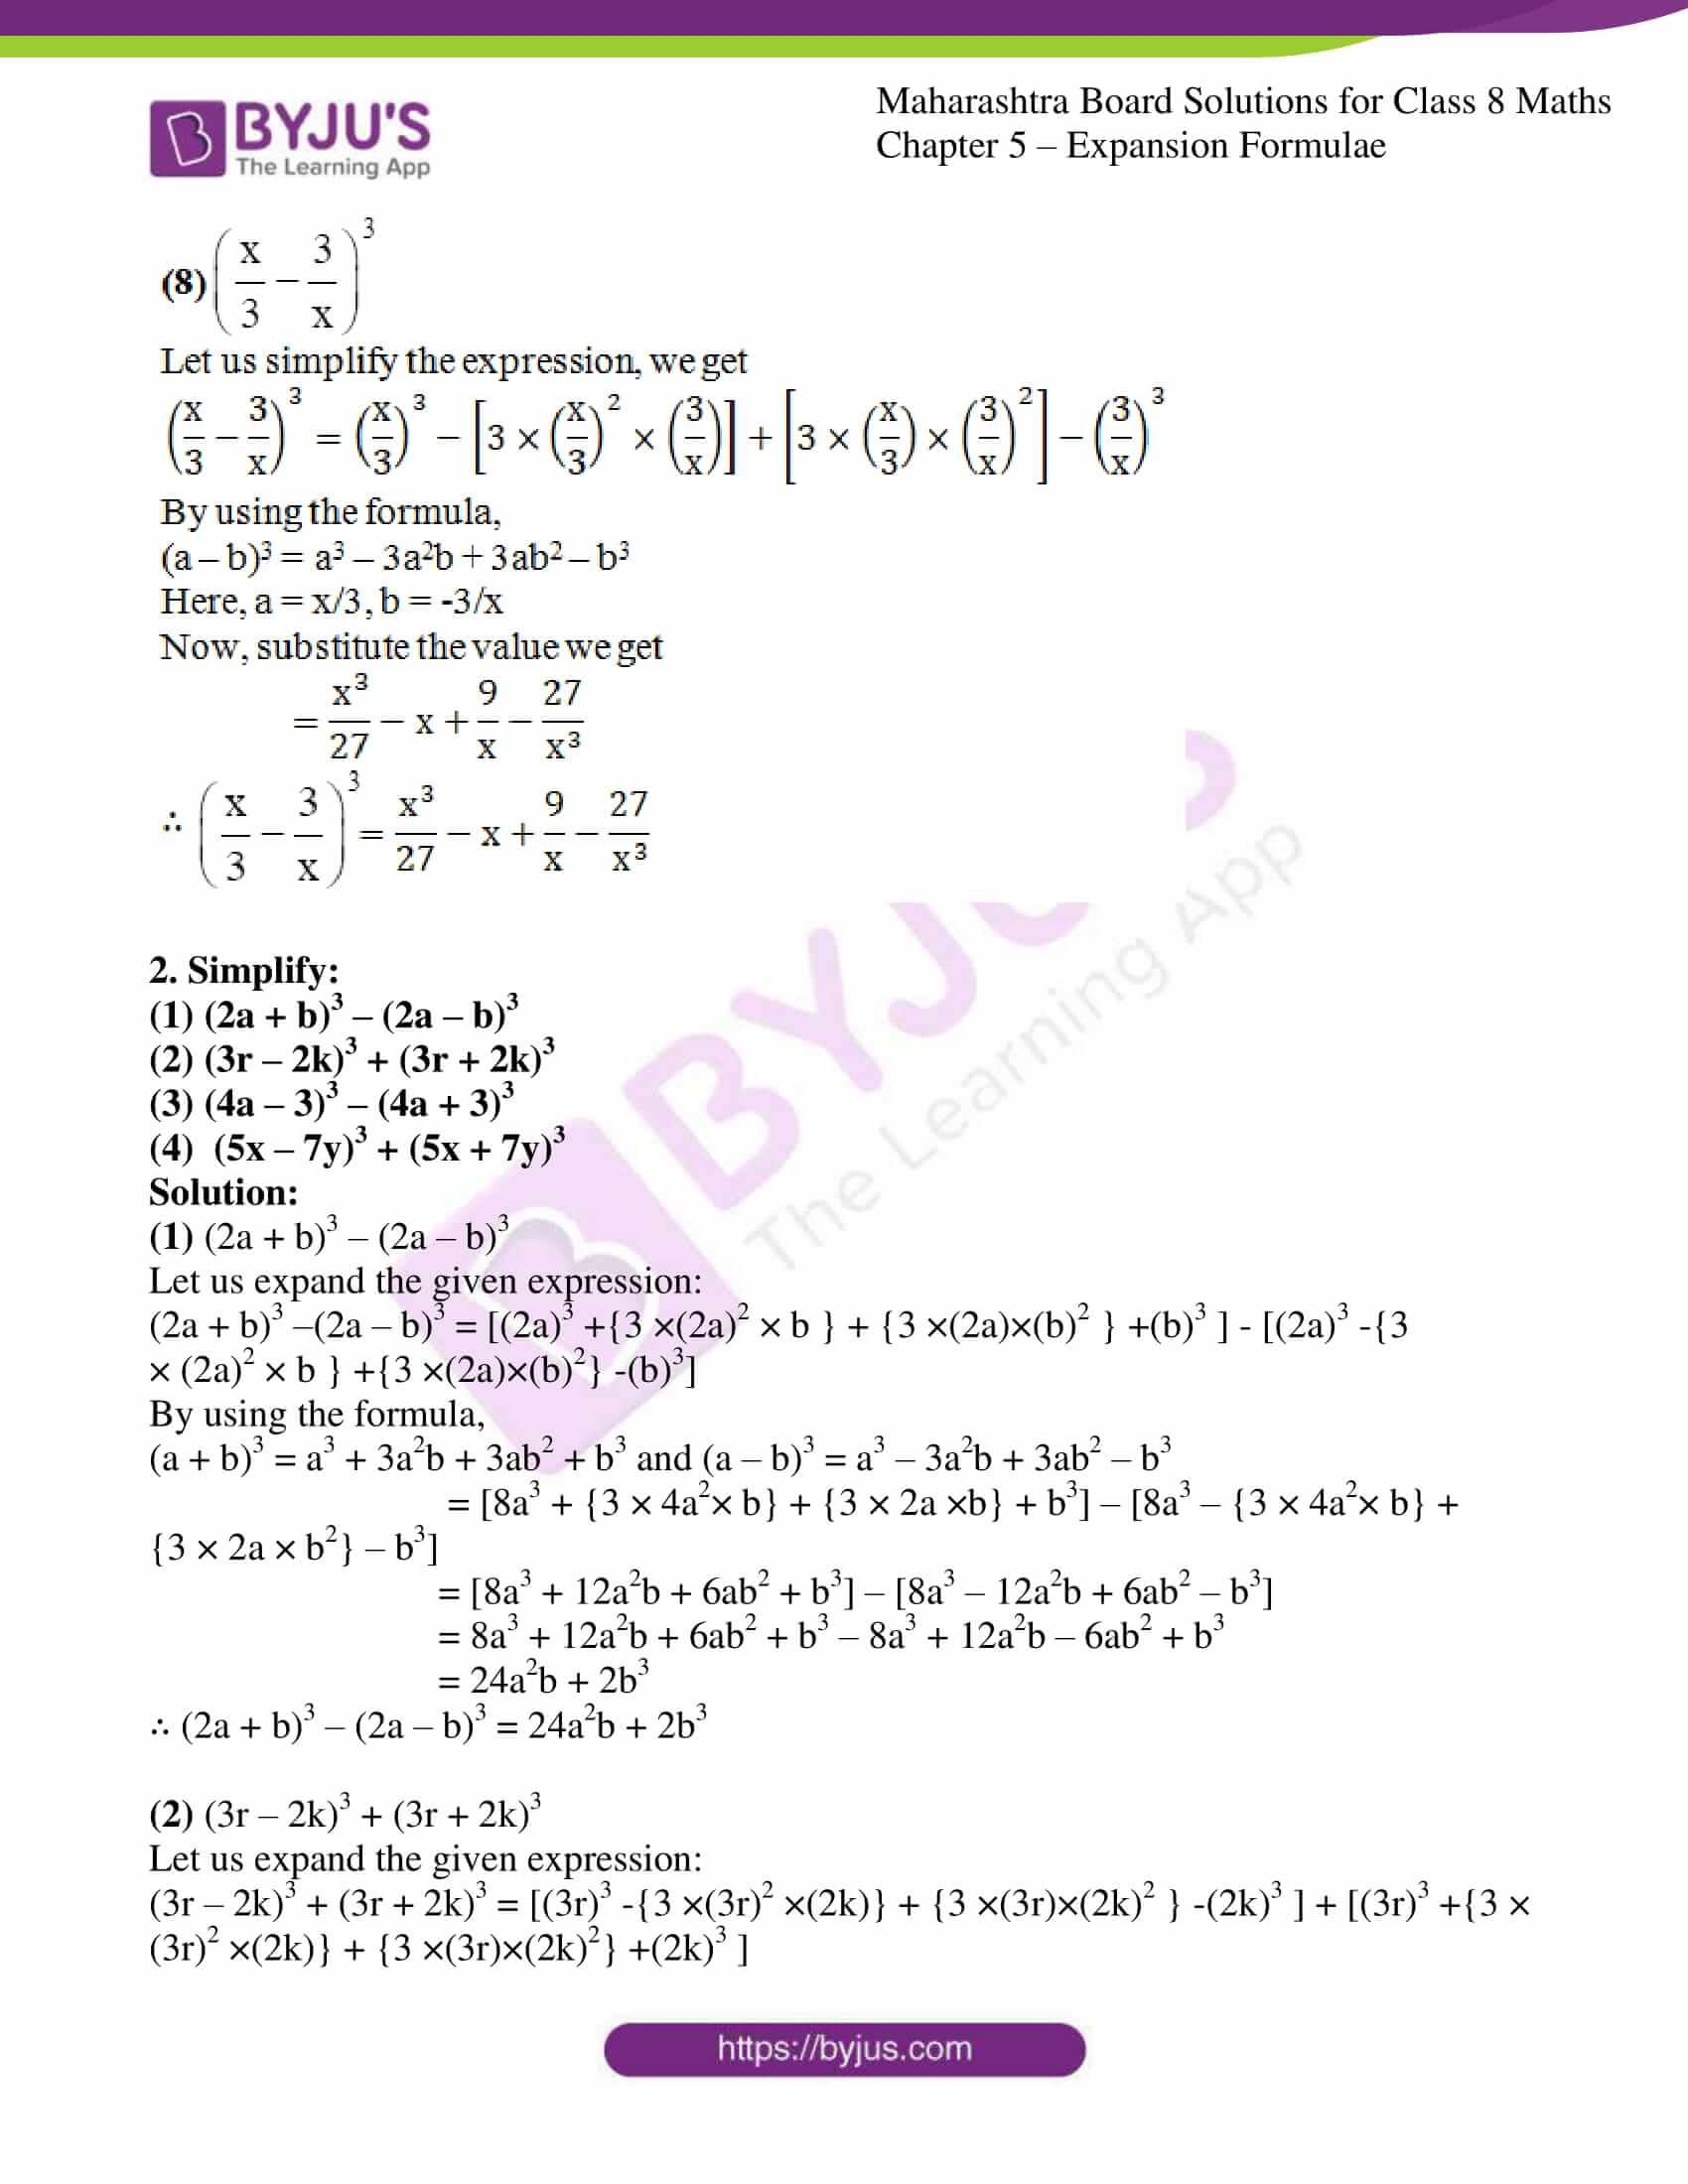 msbshse sol for class 8 maths chapter 5 12